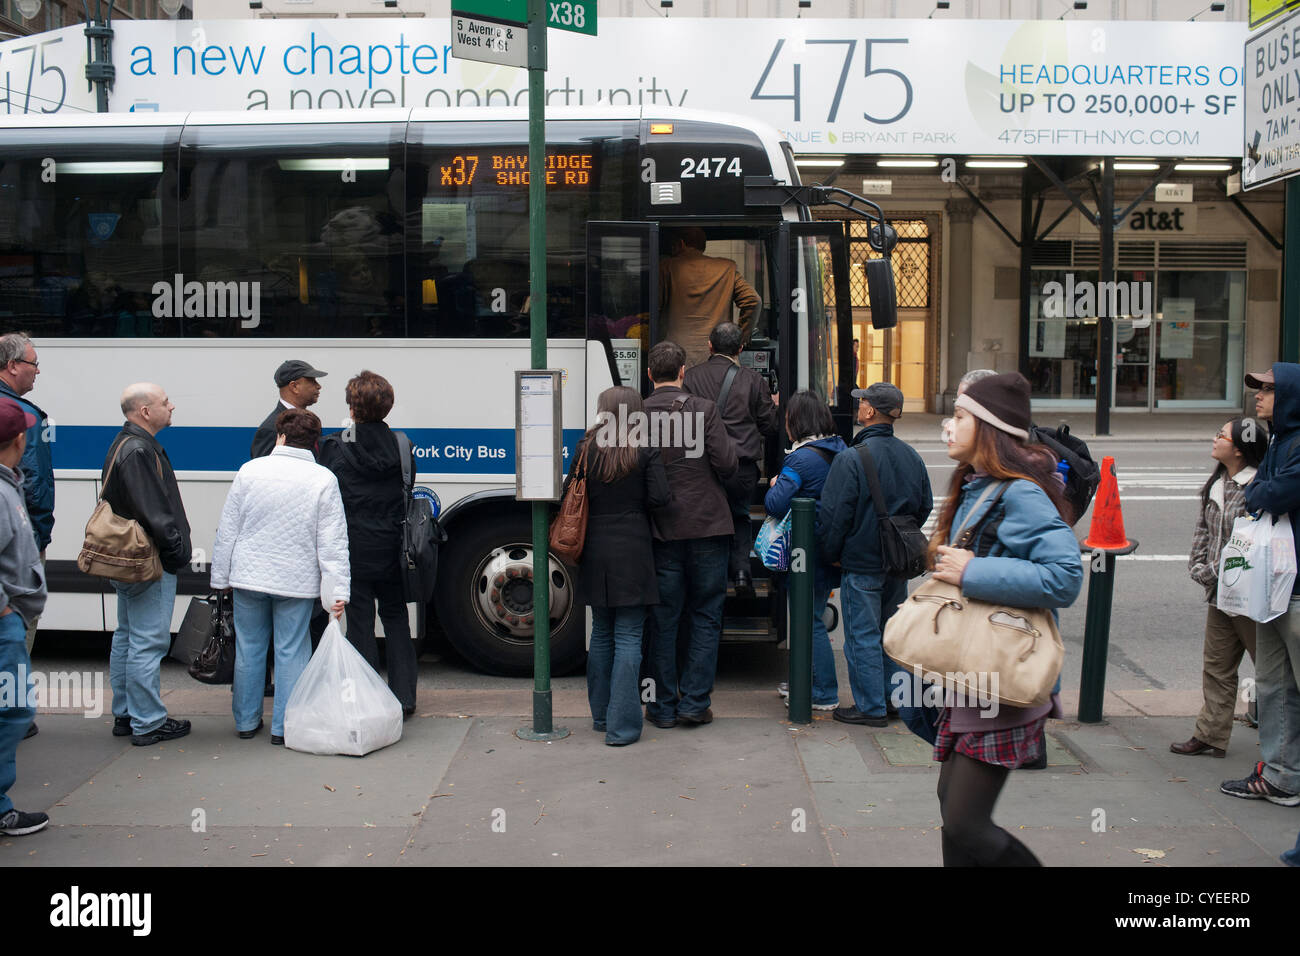 Commuters in New York contend with crowded buses, traffic and long lines on their trip home Stock Photo